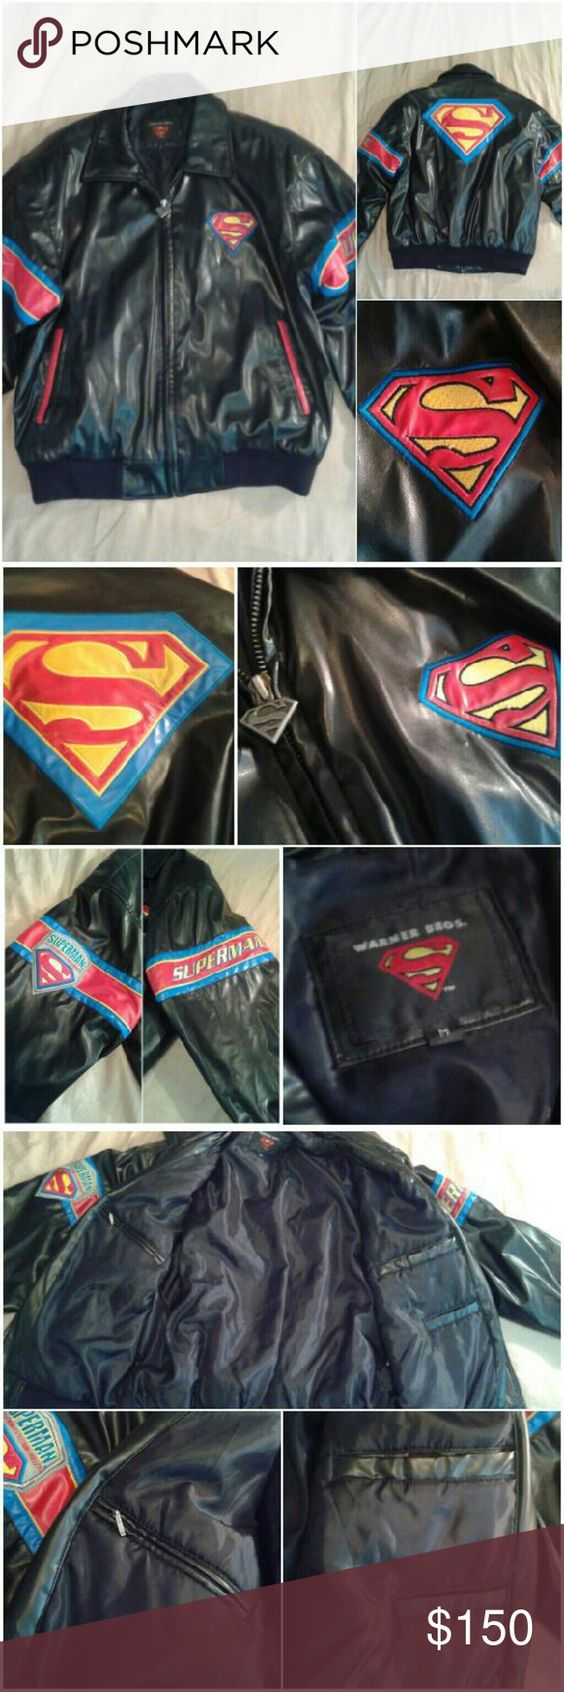 """Warner Bros. Superman Bomber Jacket This authentic Warner Brothers (marked Lazy Oaf for style) bomber jacket will have you feeling like the Man of Steel! Not only is it super cool looking with amazing Superman-themed details all over, it is quite heavy and warm enough for winter too. Minor points of damage all pictured: small peeling by one pocket, a taped-up rip on one sleeve, and tiny discoloration marks on one shoulder. 100% polyester. Measures 24"""" armpit to armpit, 25.5"""" shoulder to hem…"""